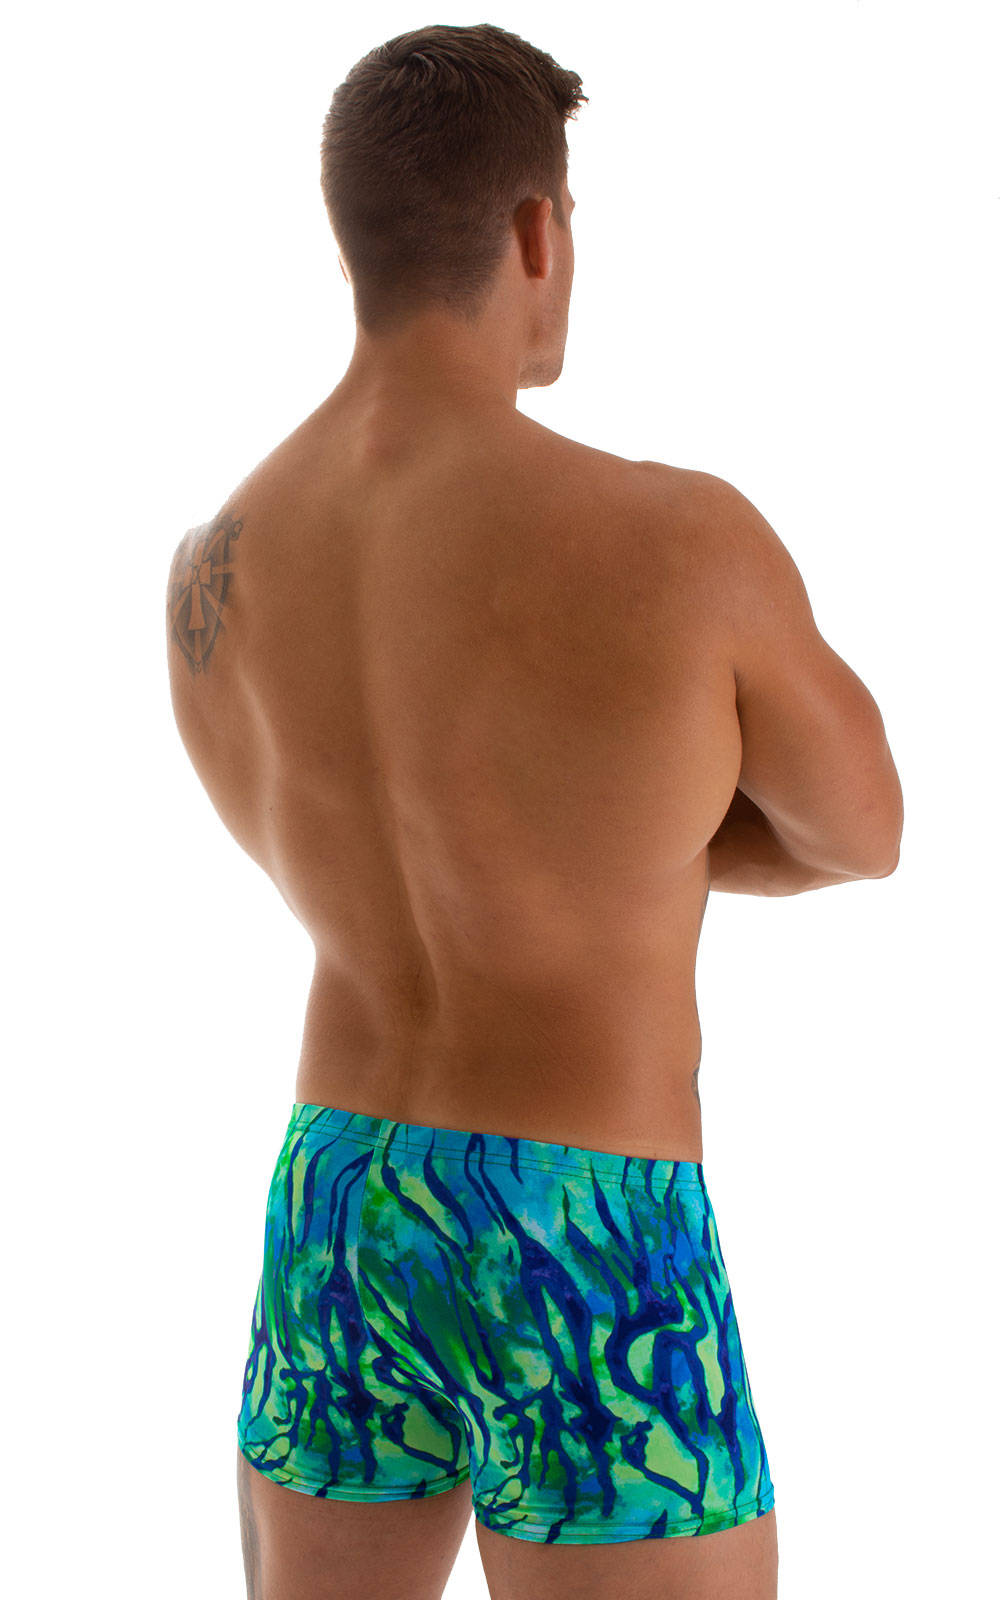 Square Cut Seamless Swim Trunks in Beach Tiger Blue-Green 2